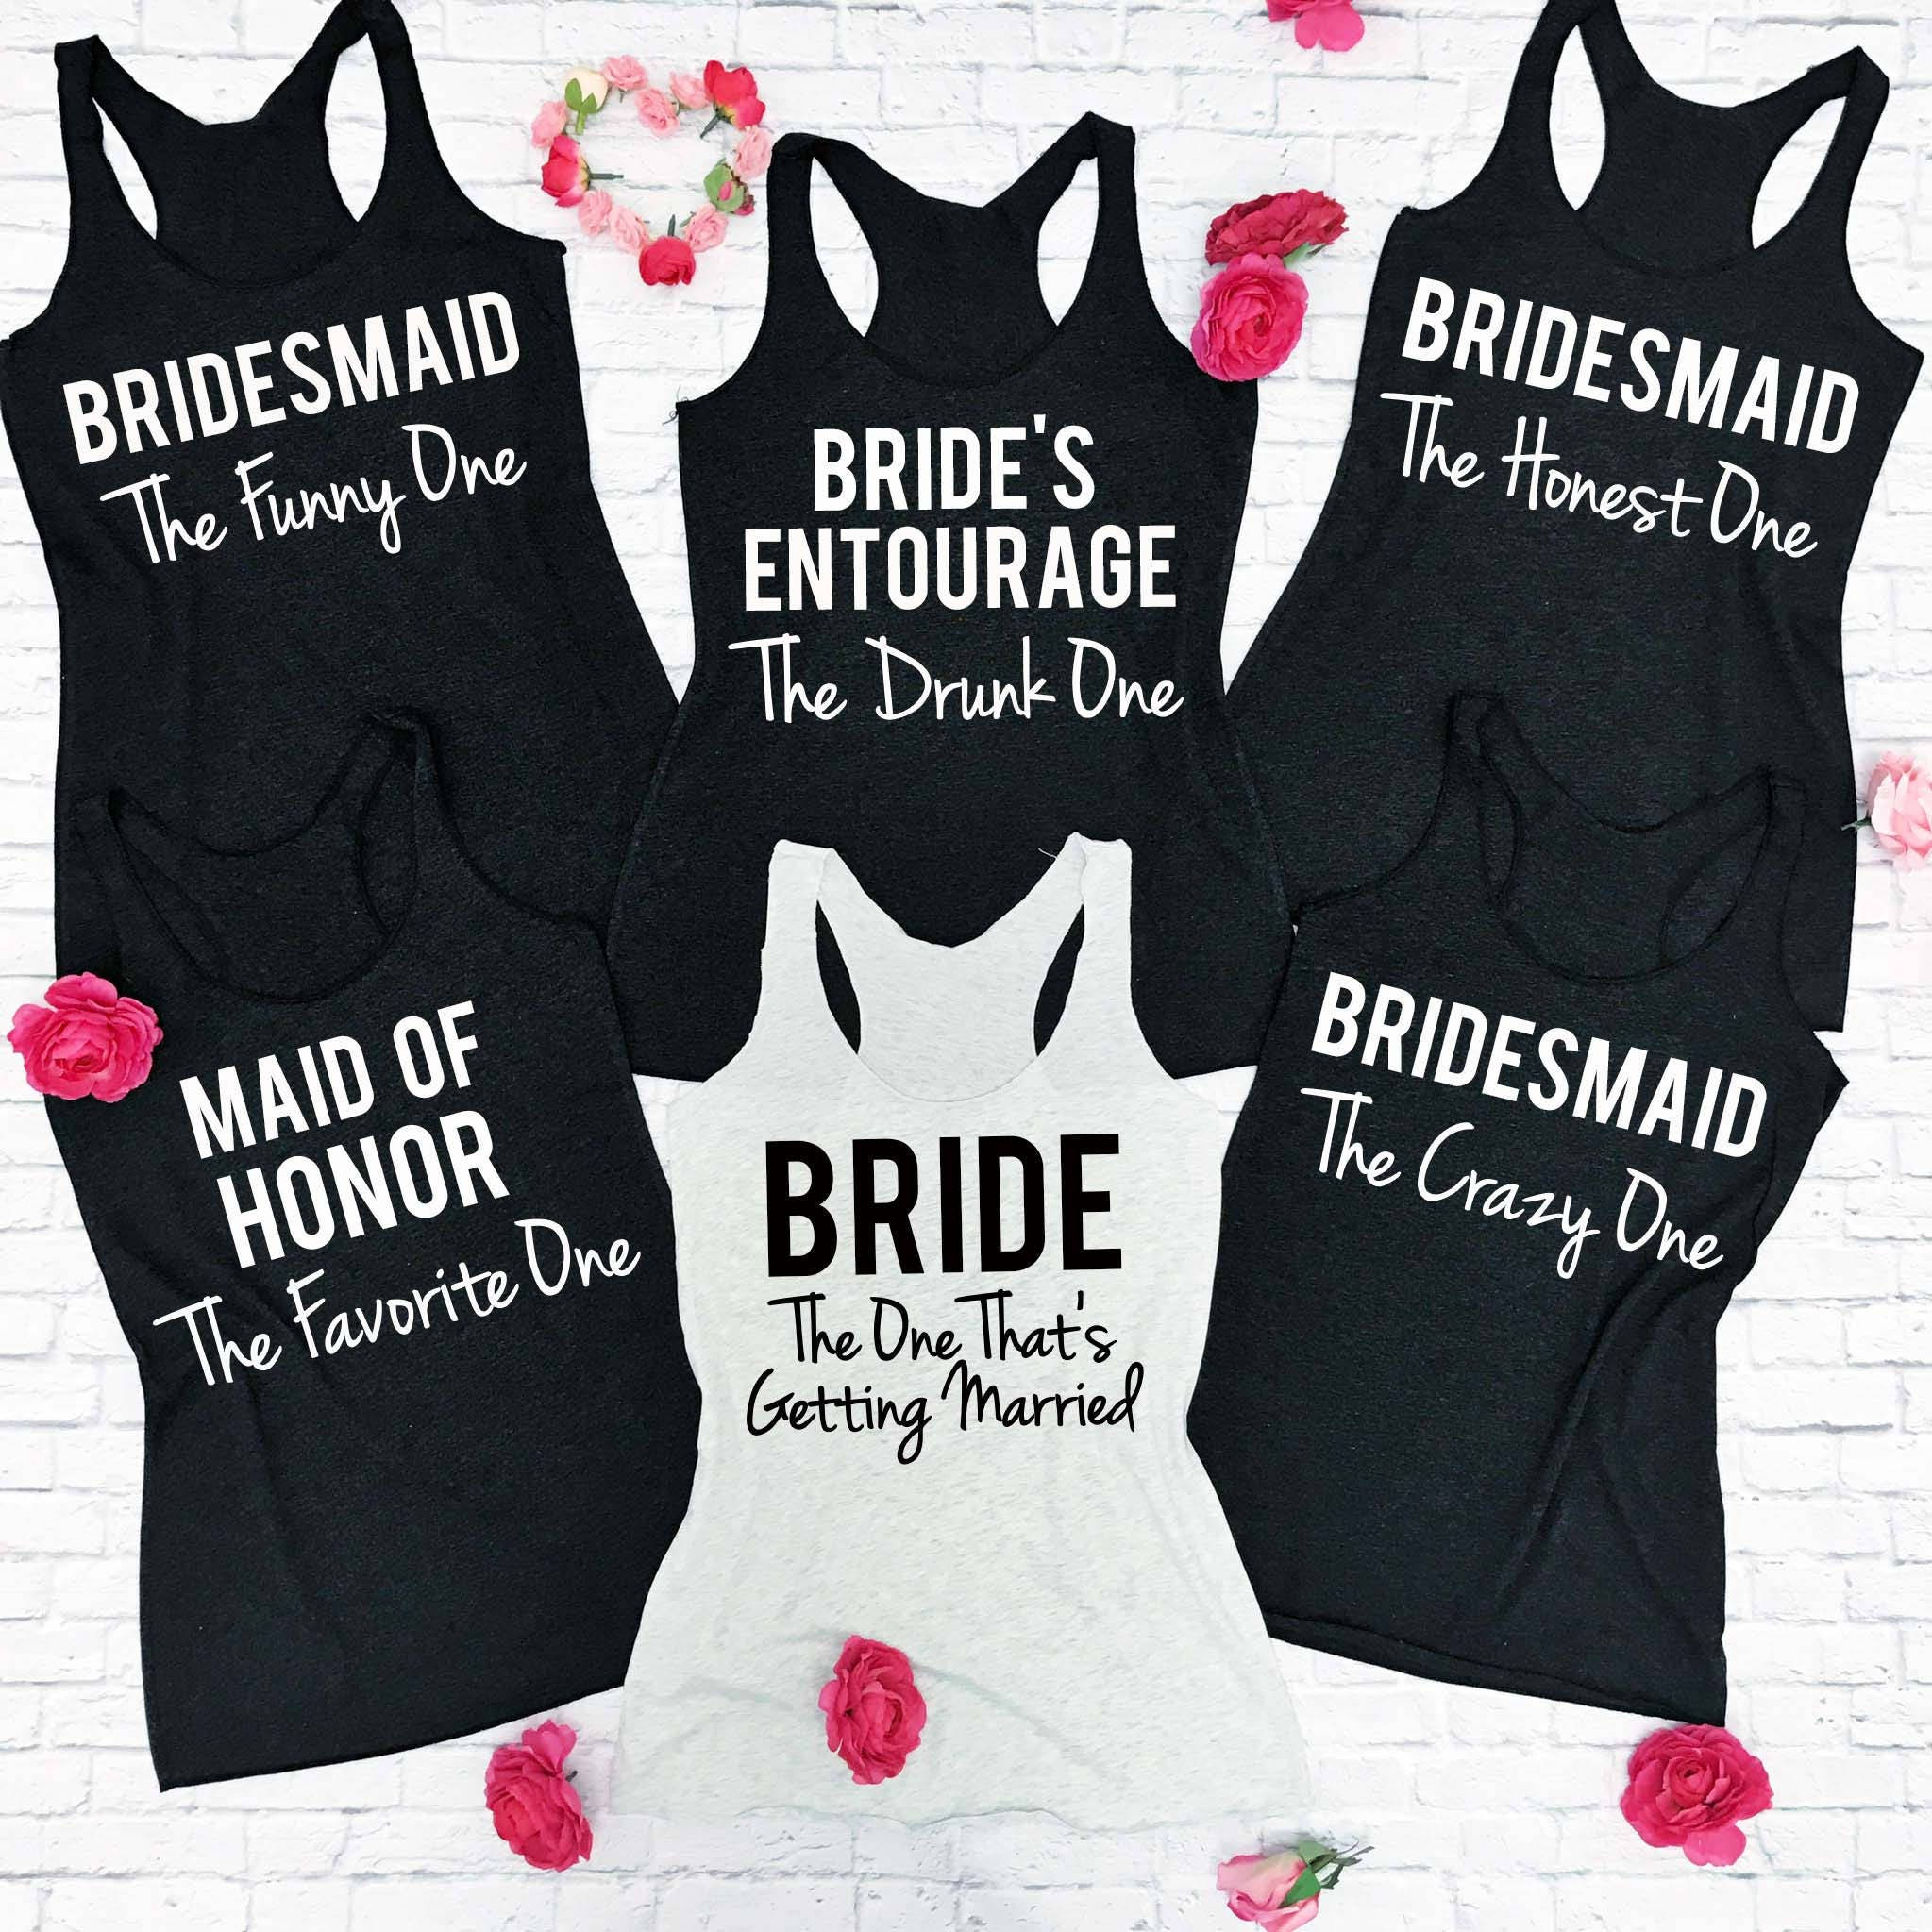 7 bridesmaid shirts 7 bachelorette party tank tops 7 wedding for Novelty bride wedding dress t shirt